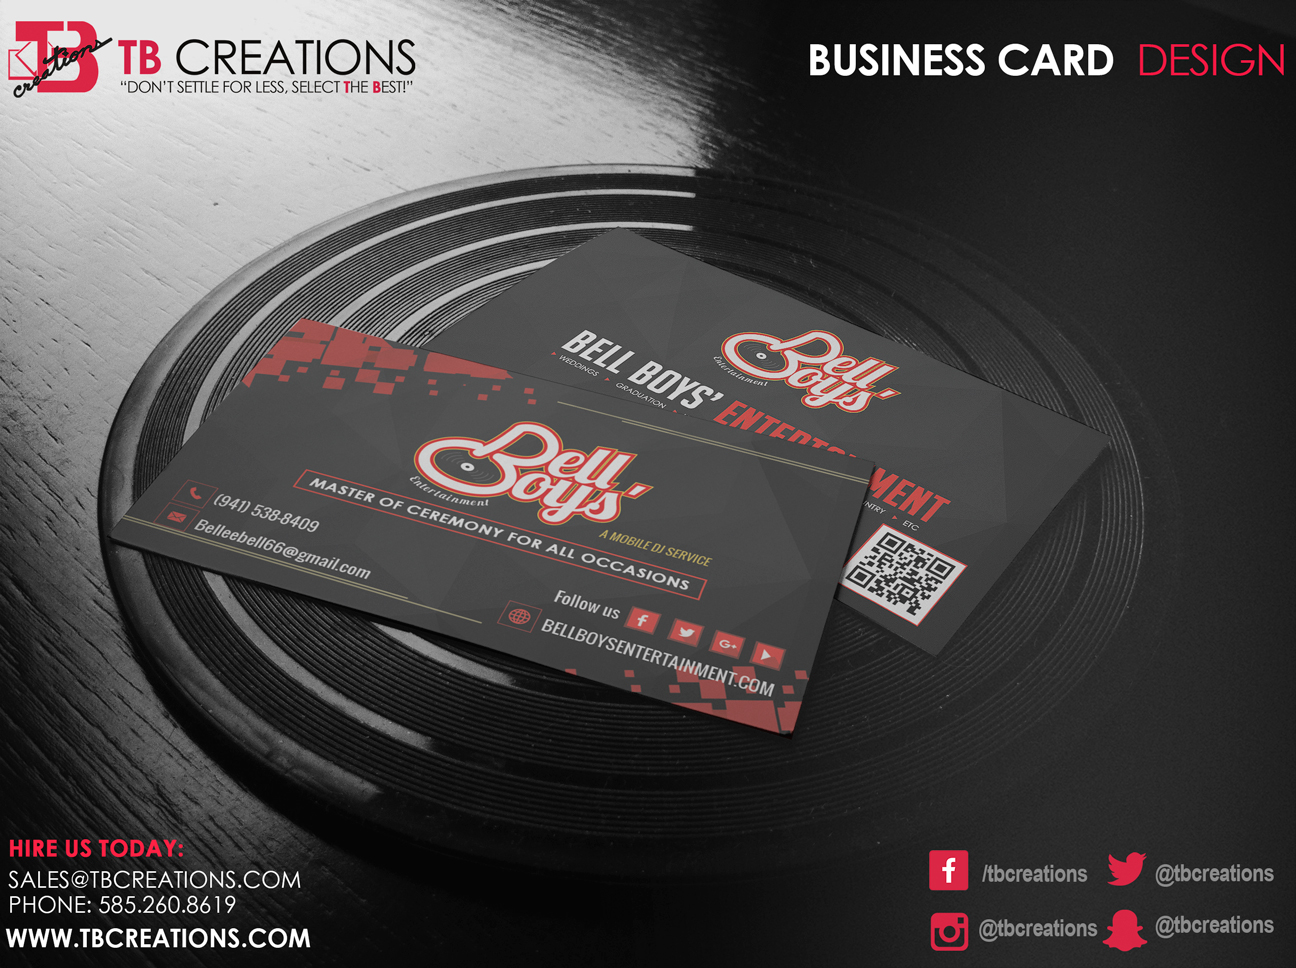 Bell boys business card tb creations rochester ny bell boys business card colourmoves